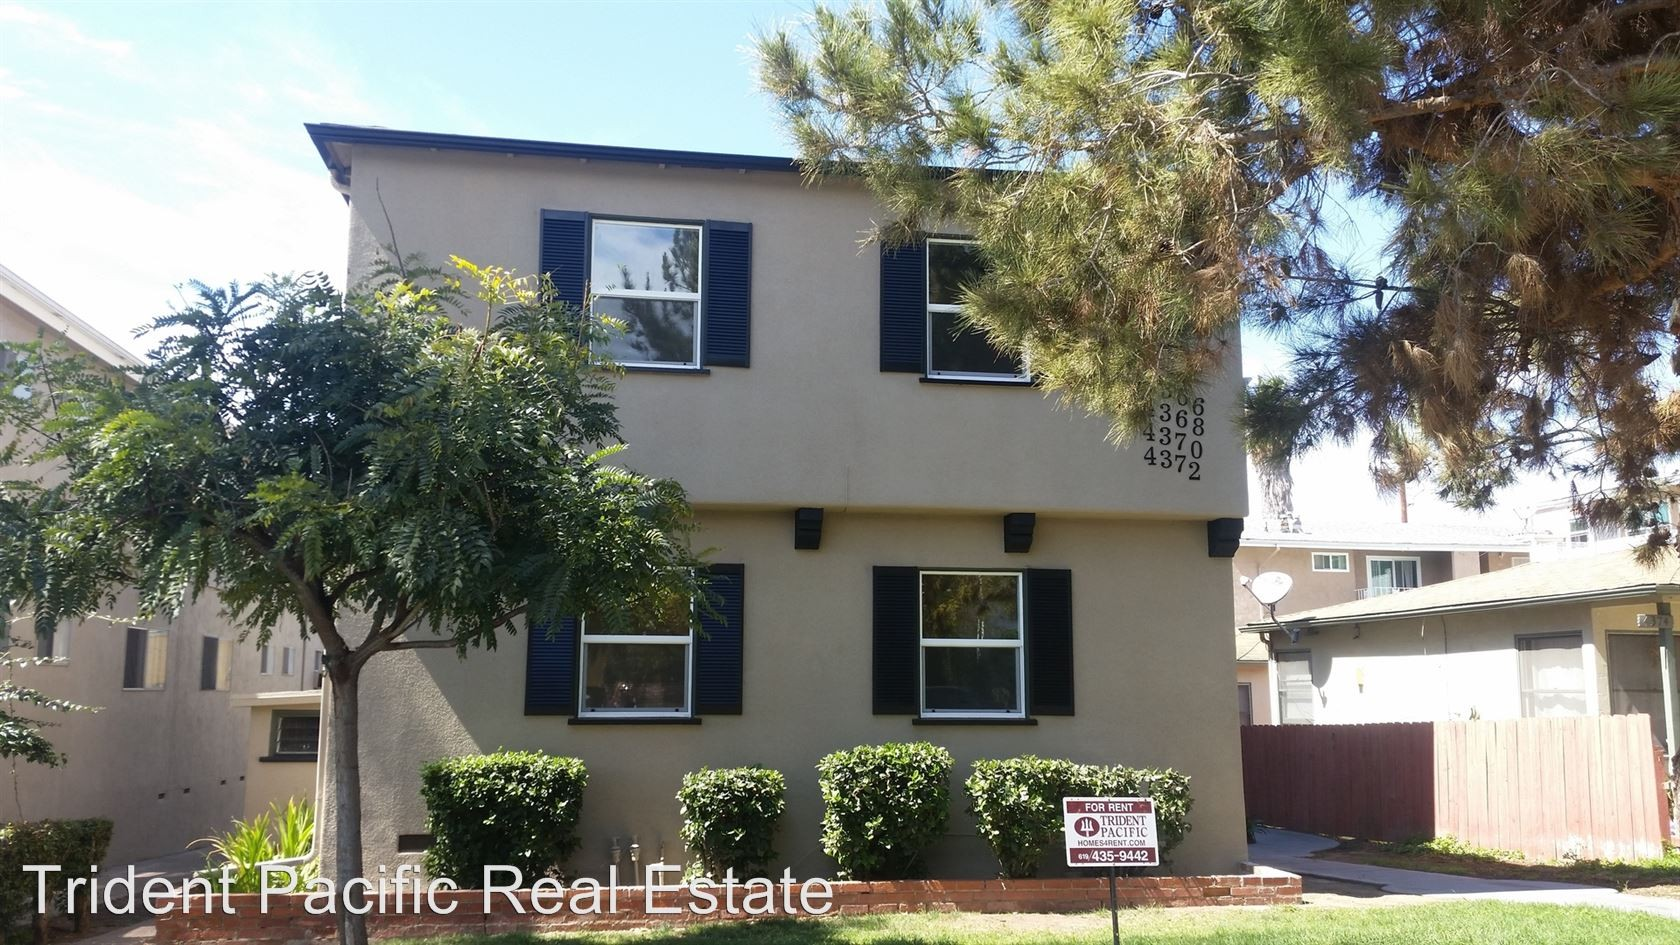 4366 Alabama St San Diego CA 2 Bedroom Apartment for Rent